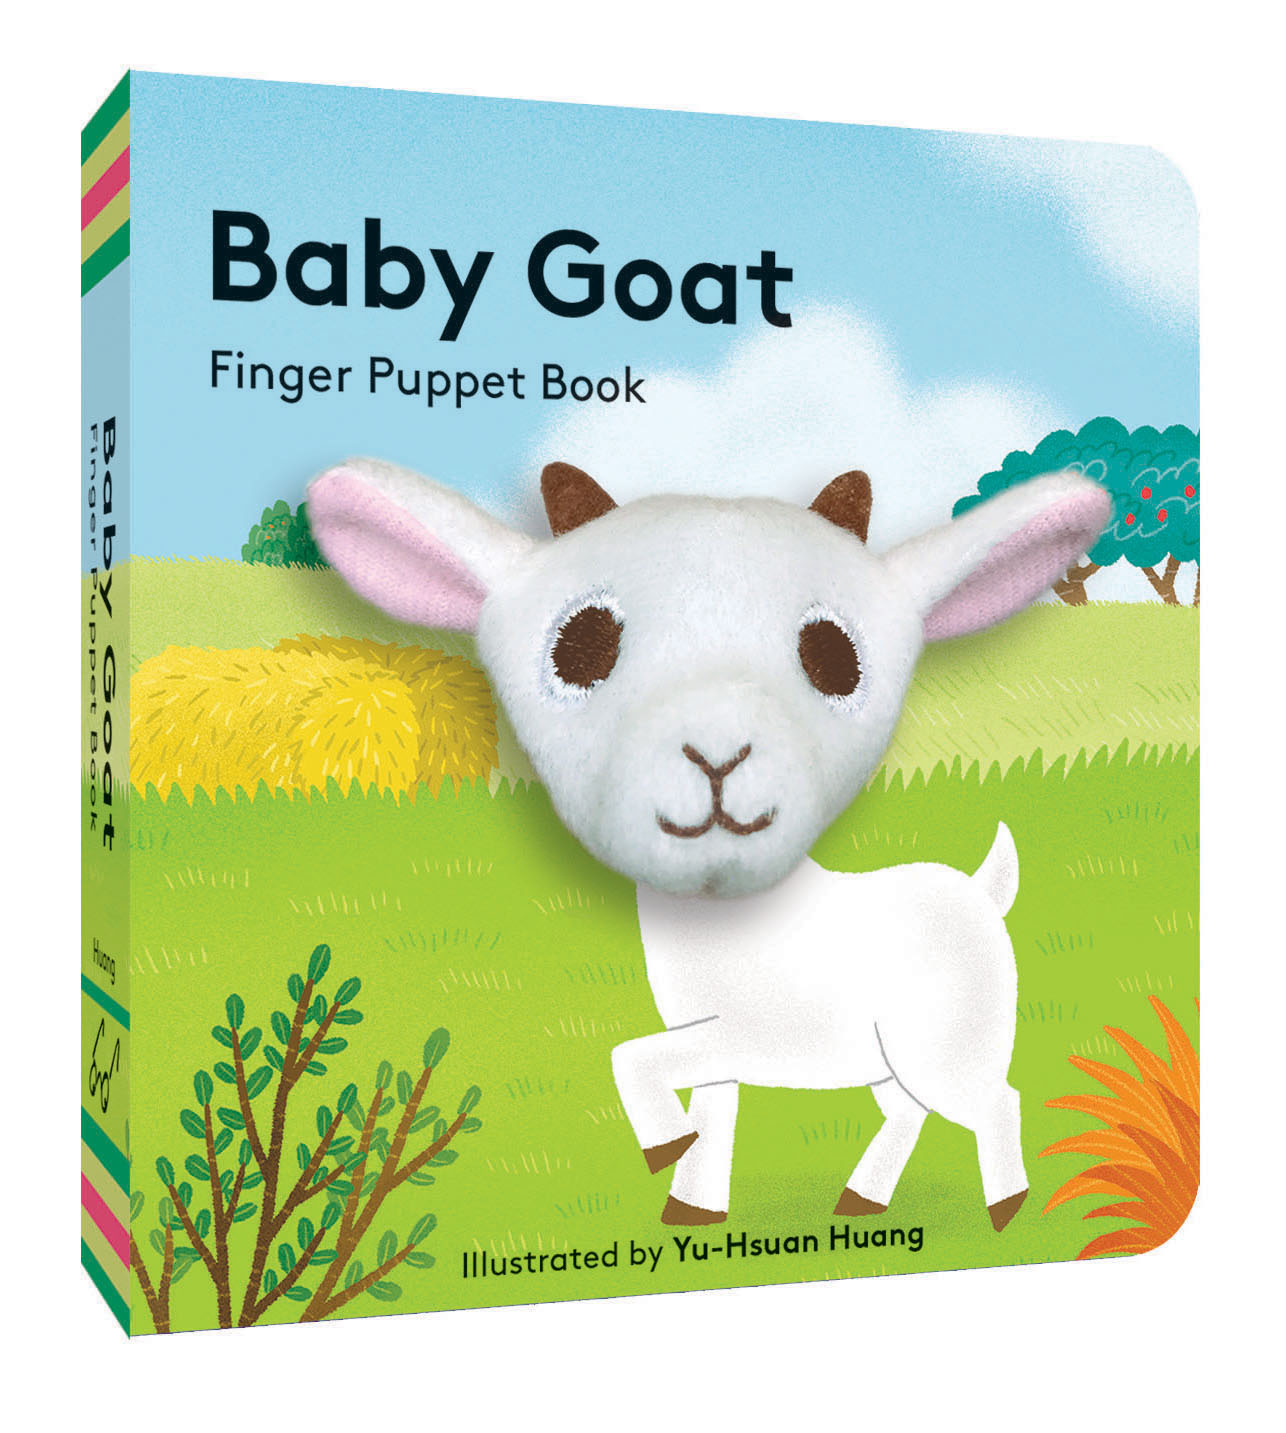 small puppet book featuring adorable baby goat